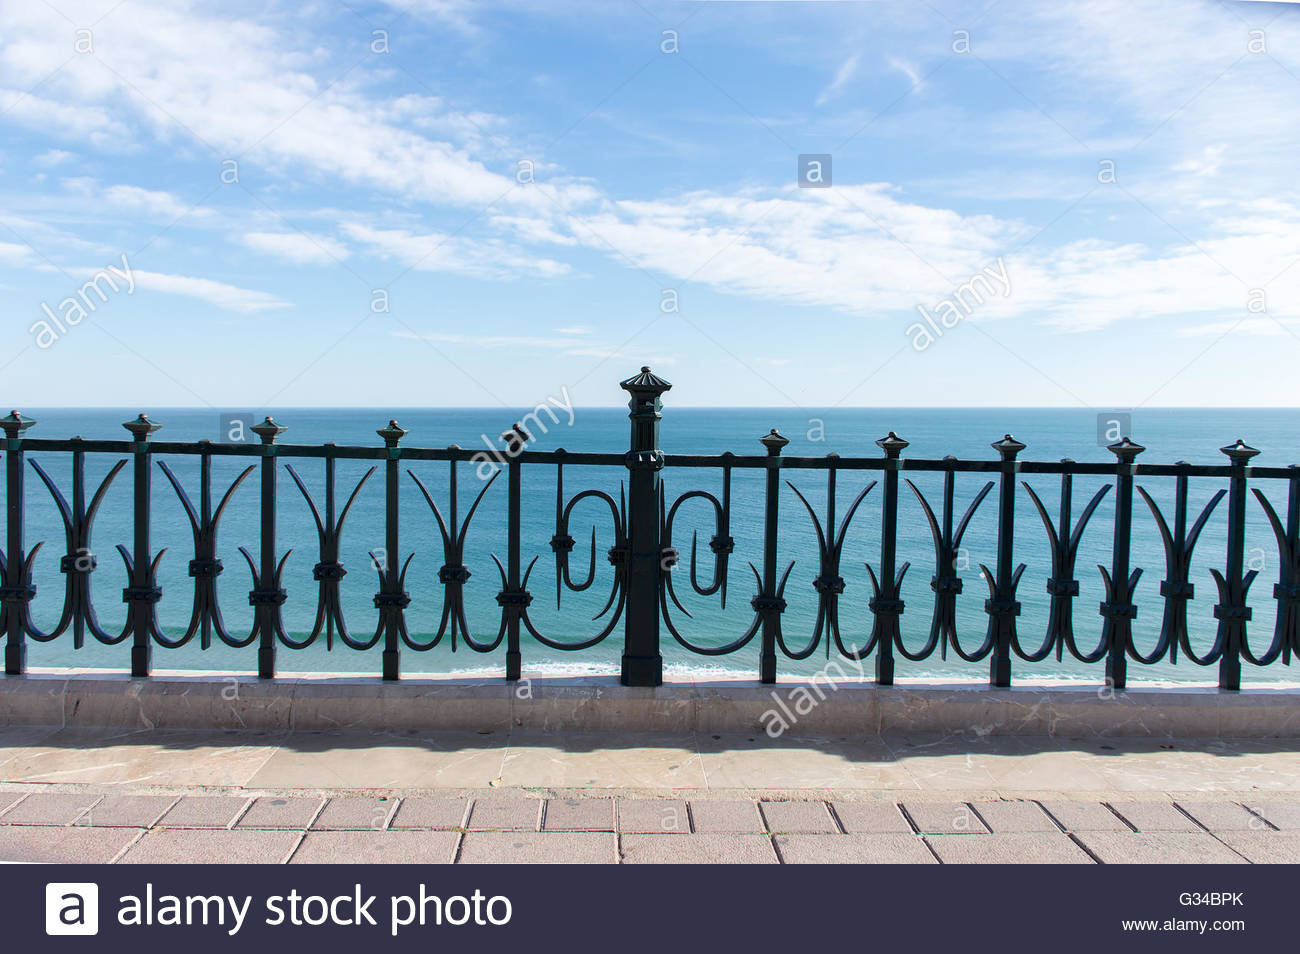 View of Mediterranean Sea from the balcony of Europe at Tarragona Spain - Stock Image